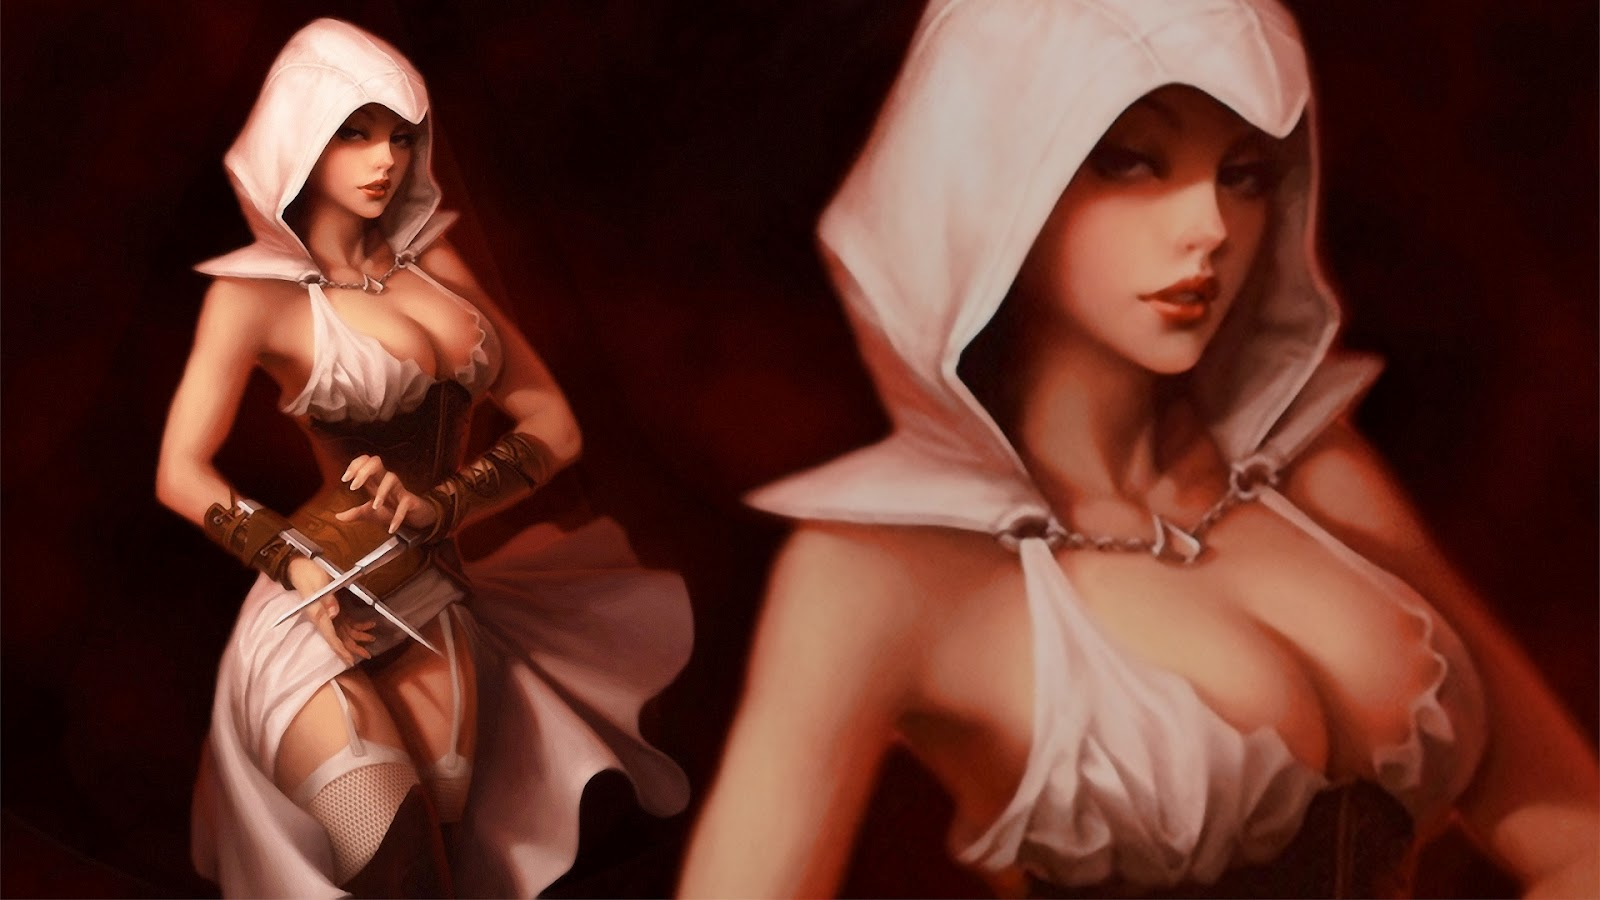 Assassin's creed naked women pics fucking gallery